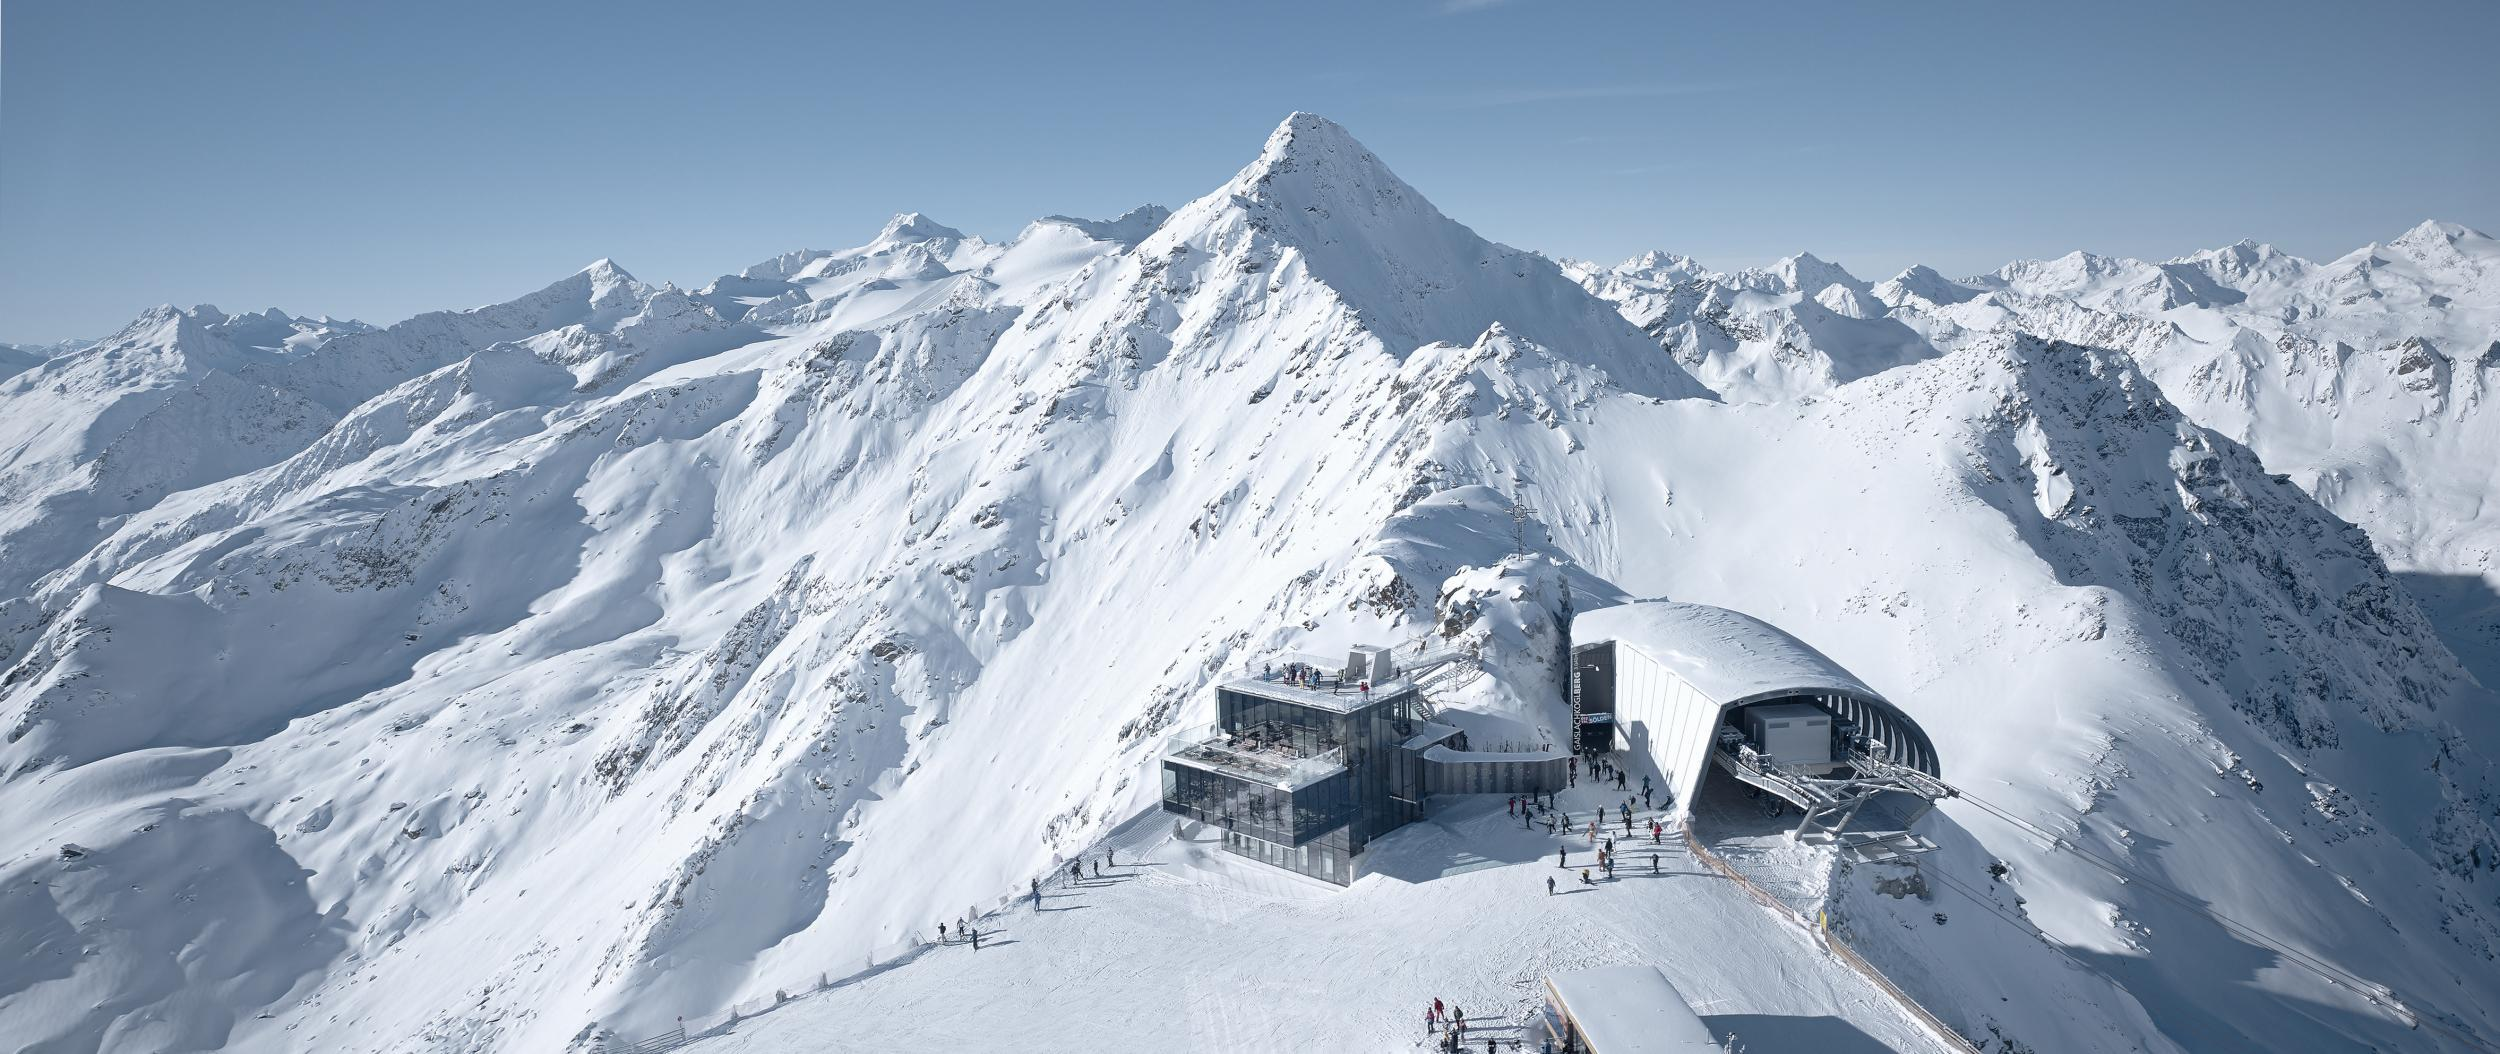 step into the future at europe's 'most hi-tech ski resort' | the